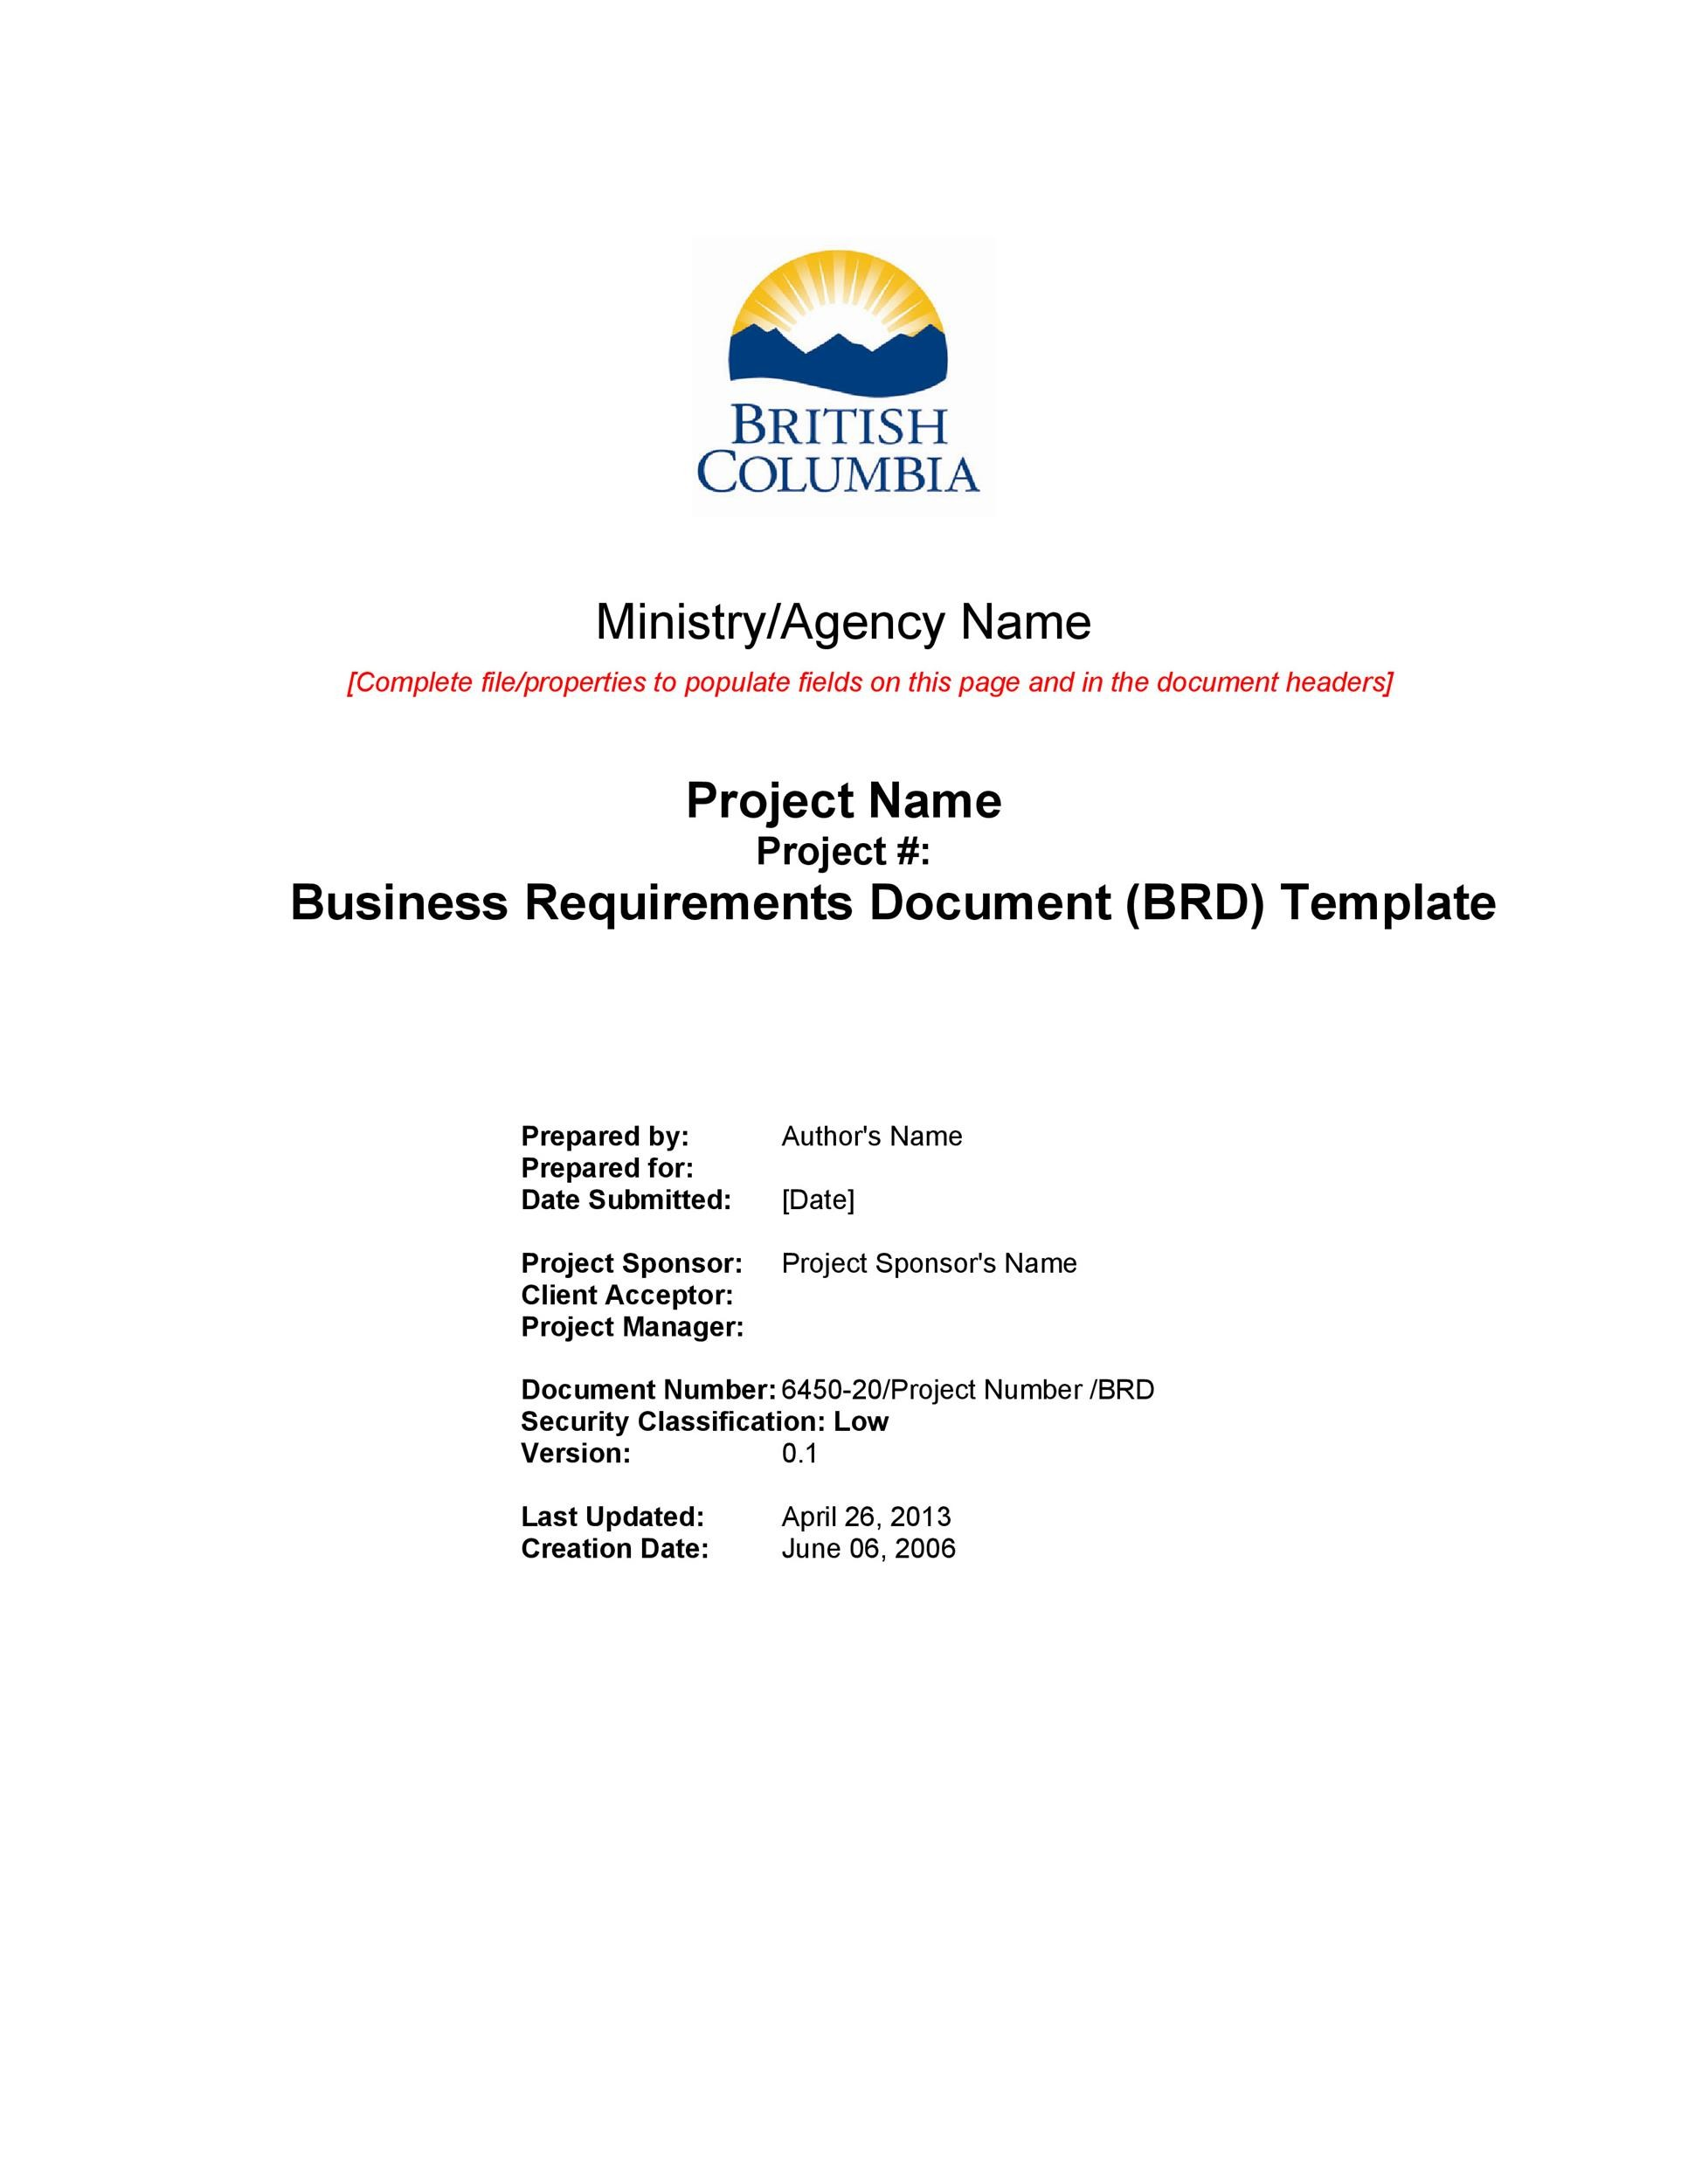 40 simple business requirements document templates template lab free business requirements document template 02 accmission